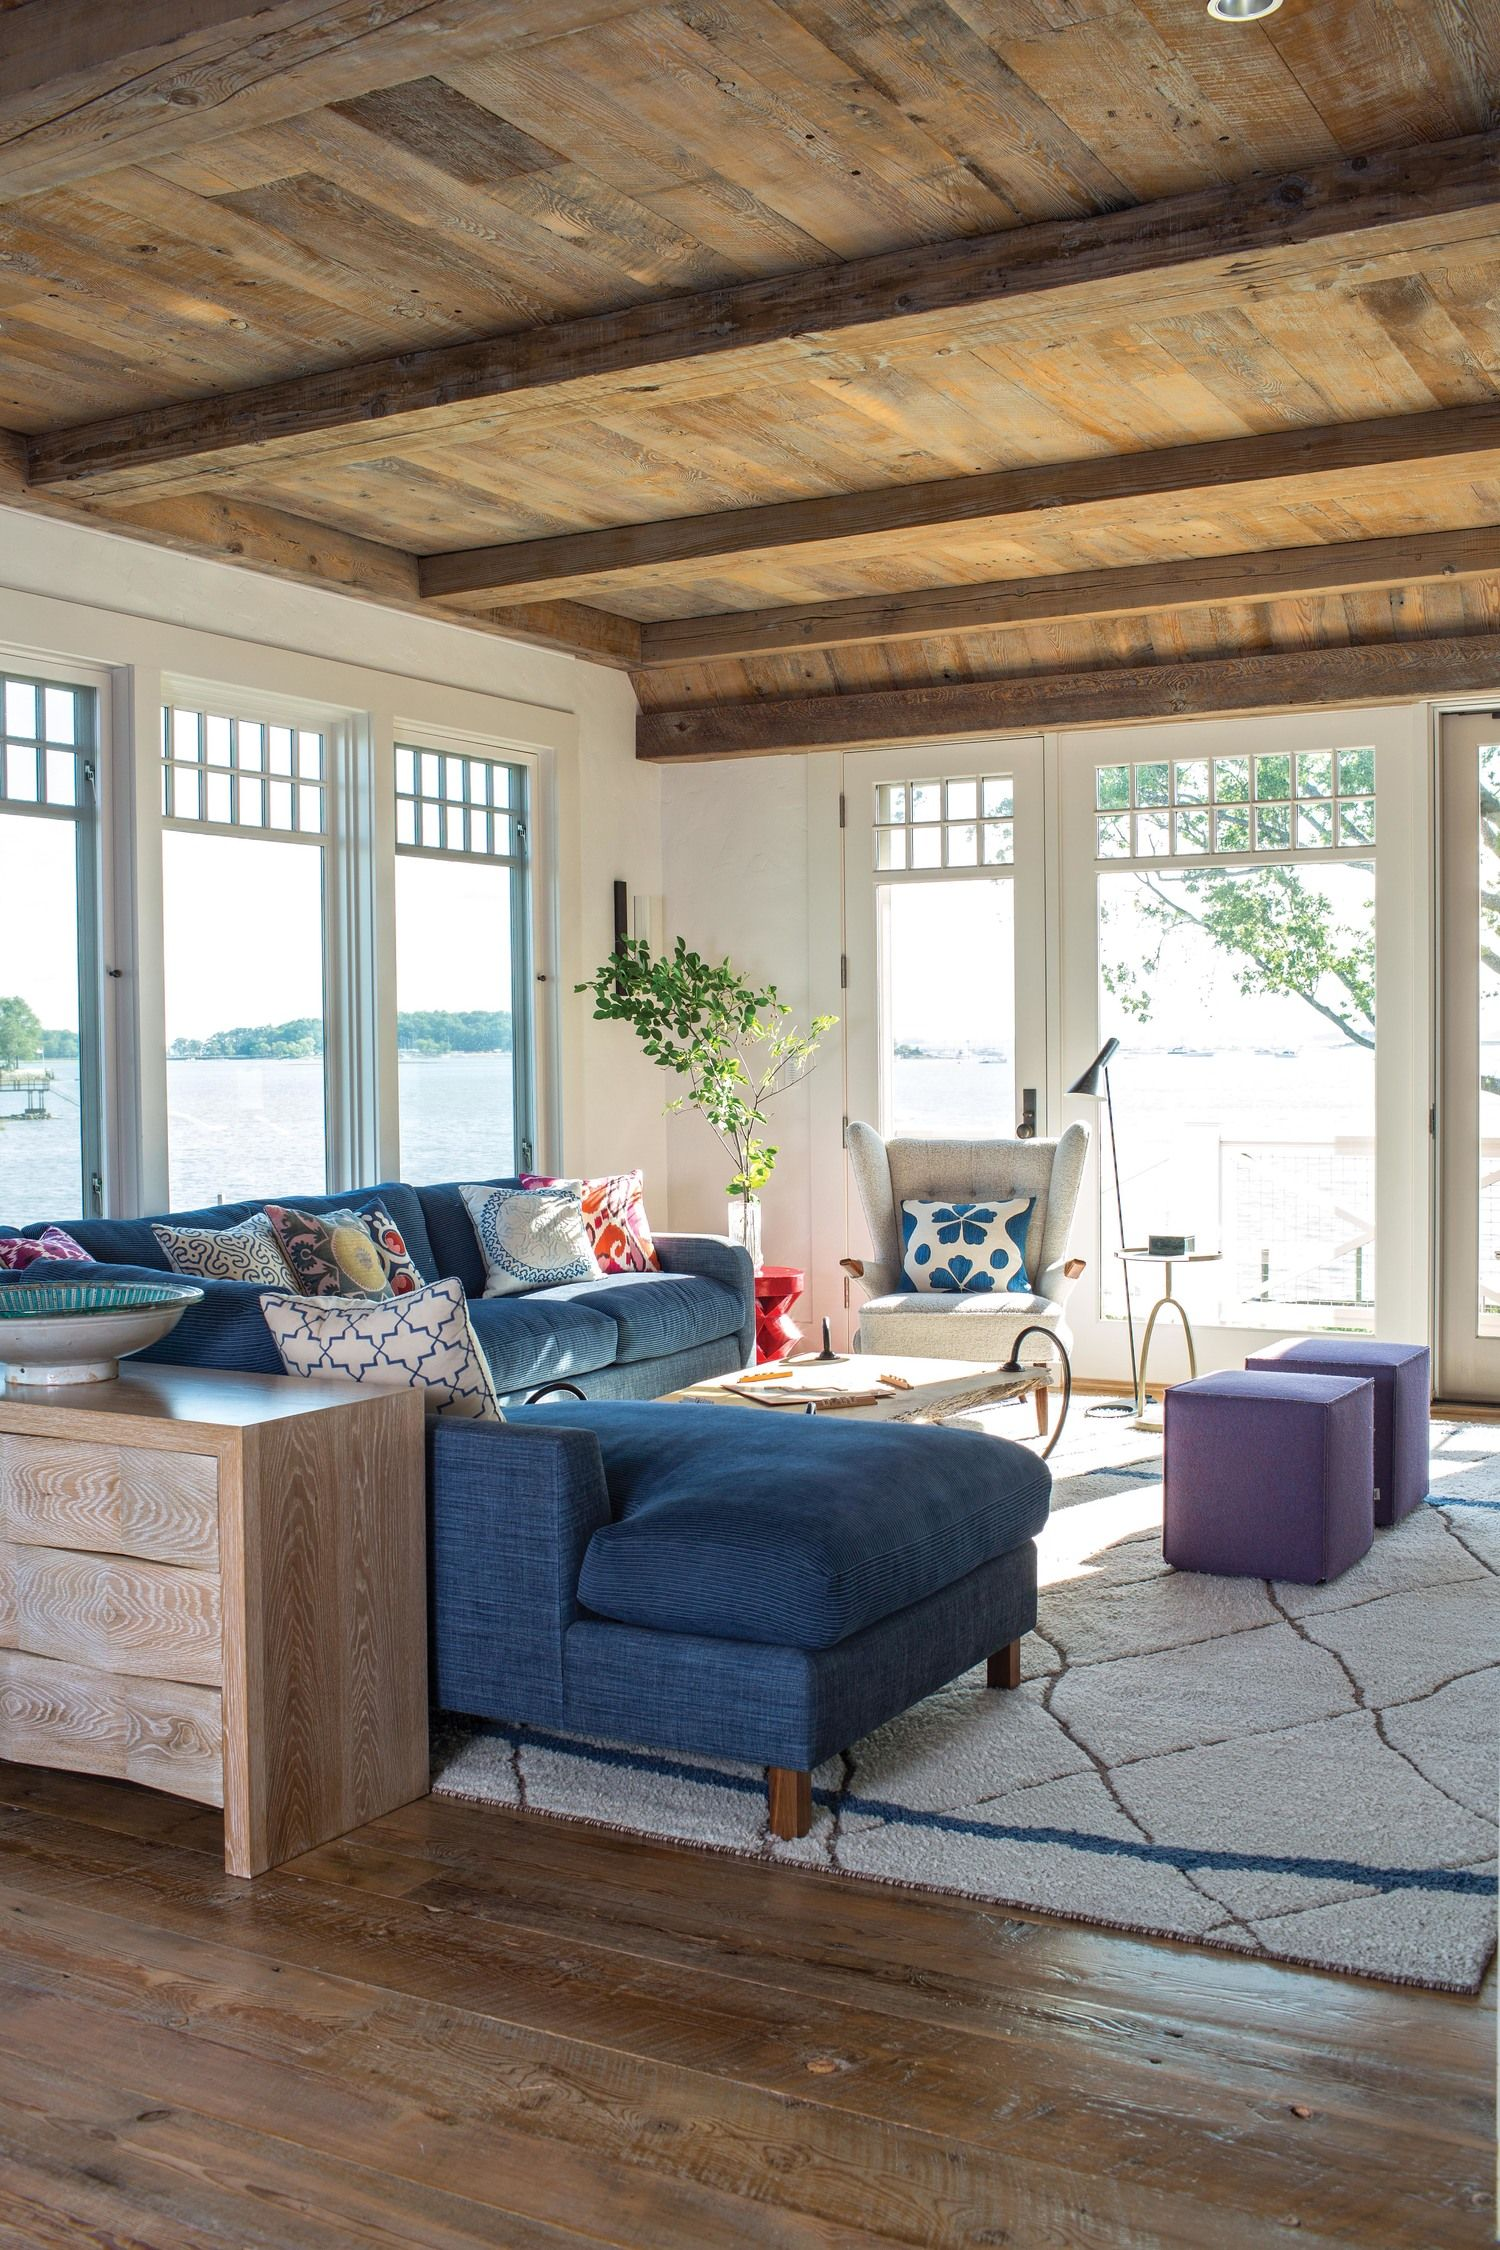 Design 3 People Room: Coastal Living Room With A View Embrace Your Low Ceilings